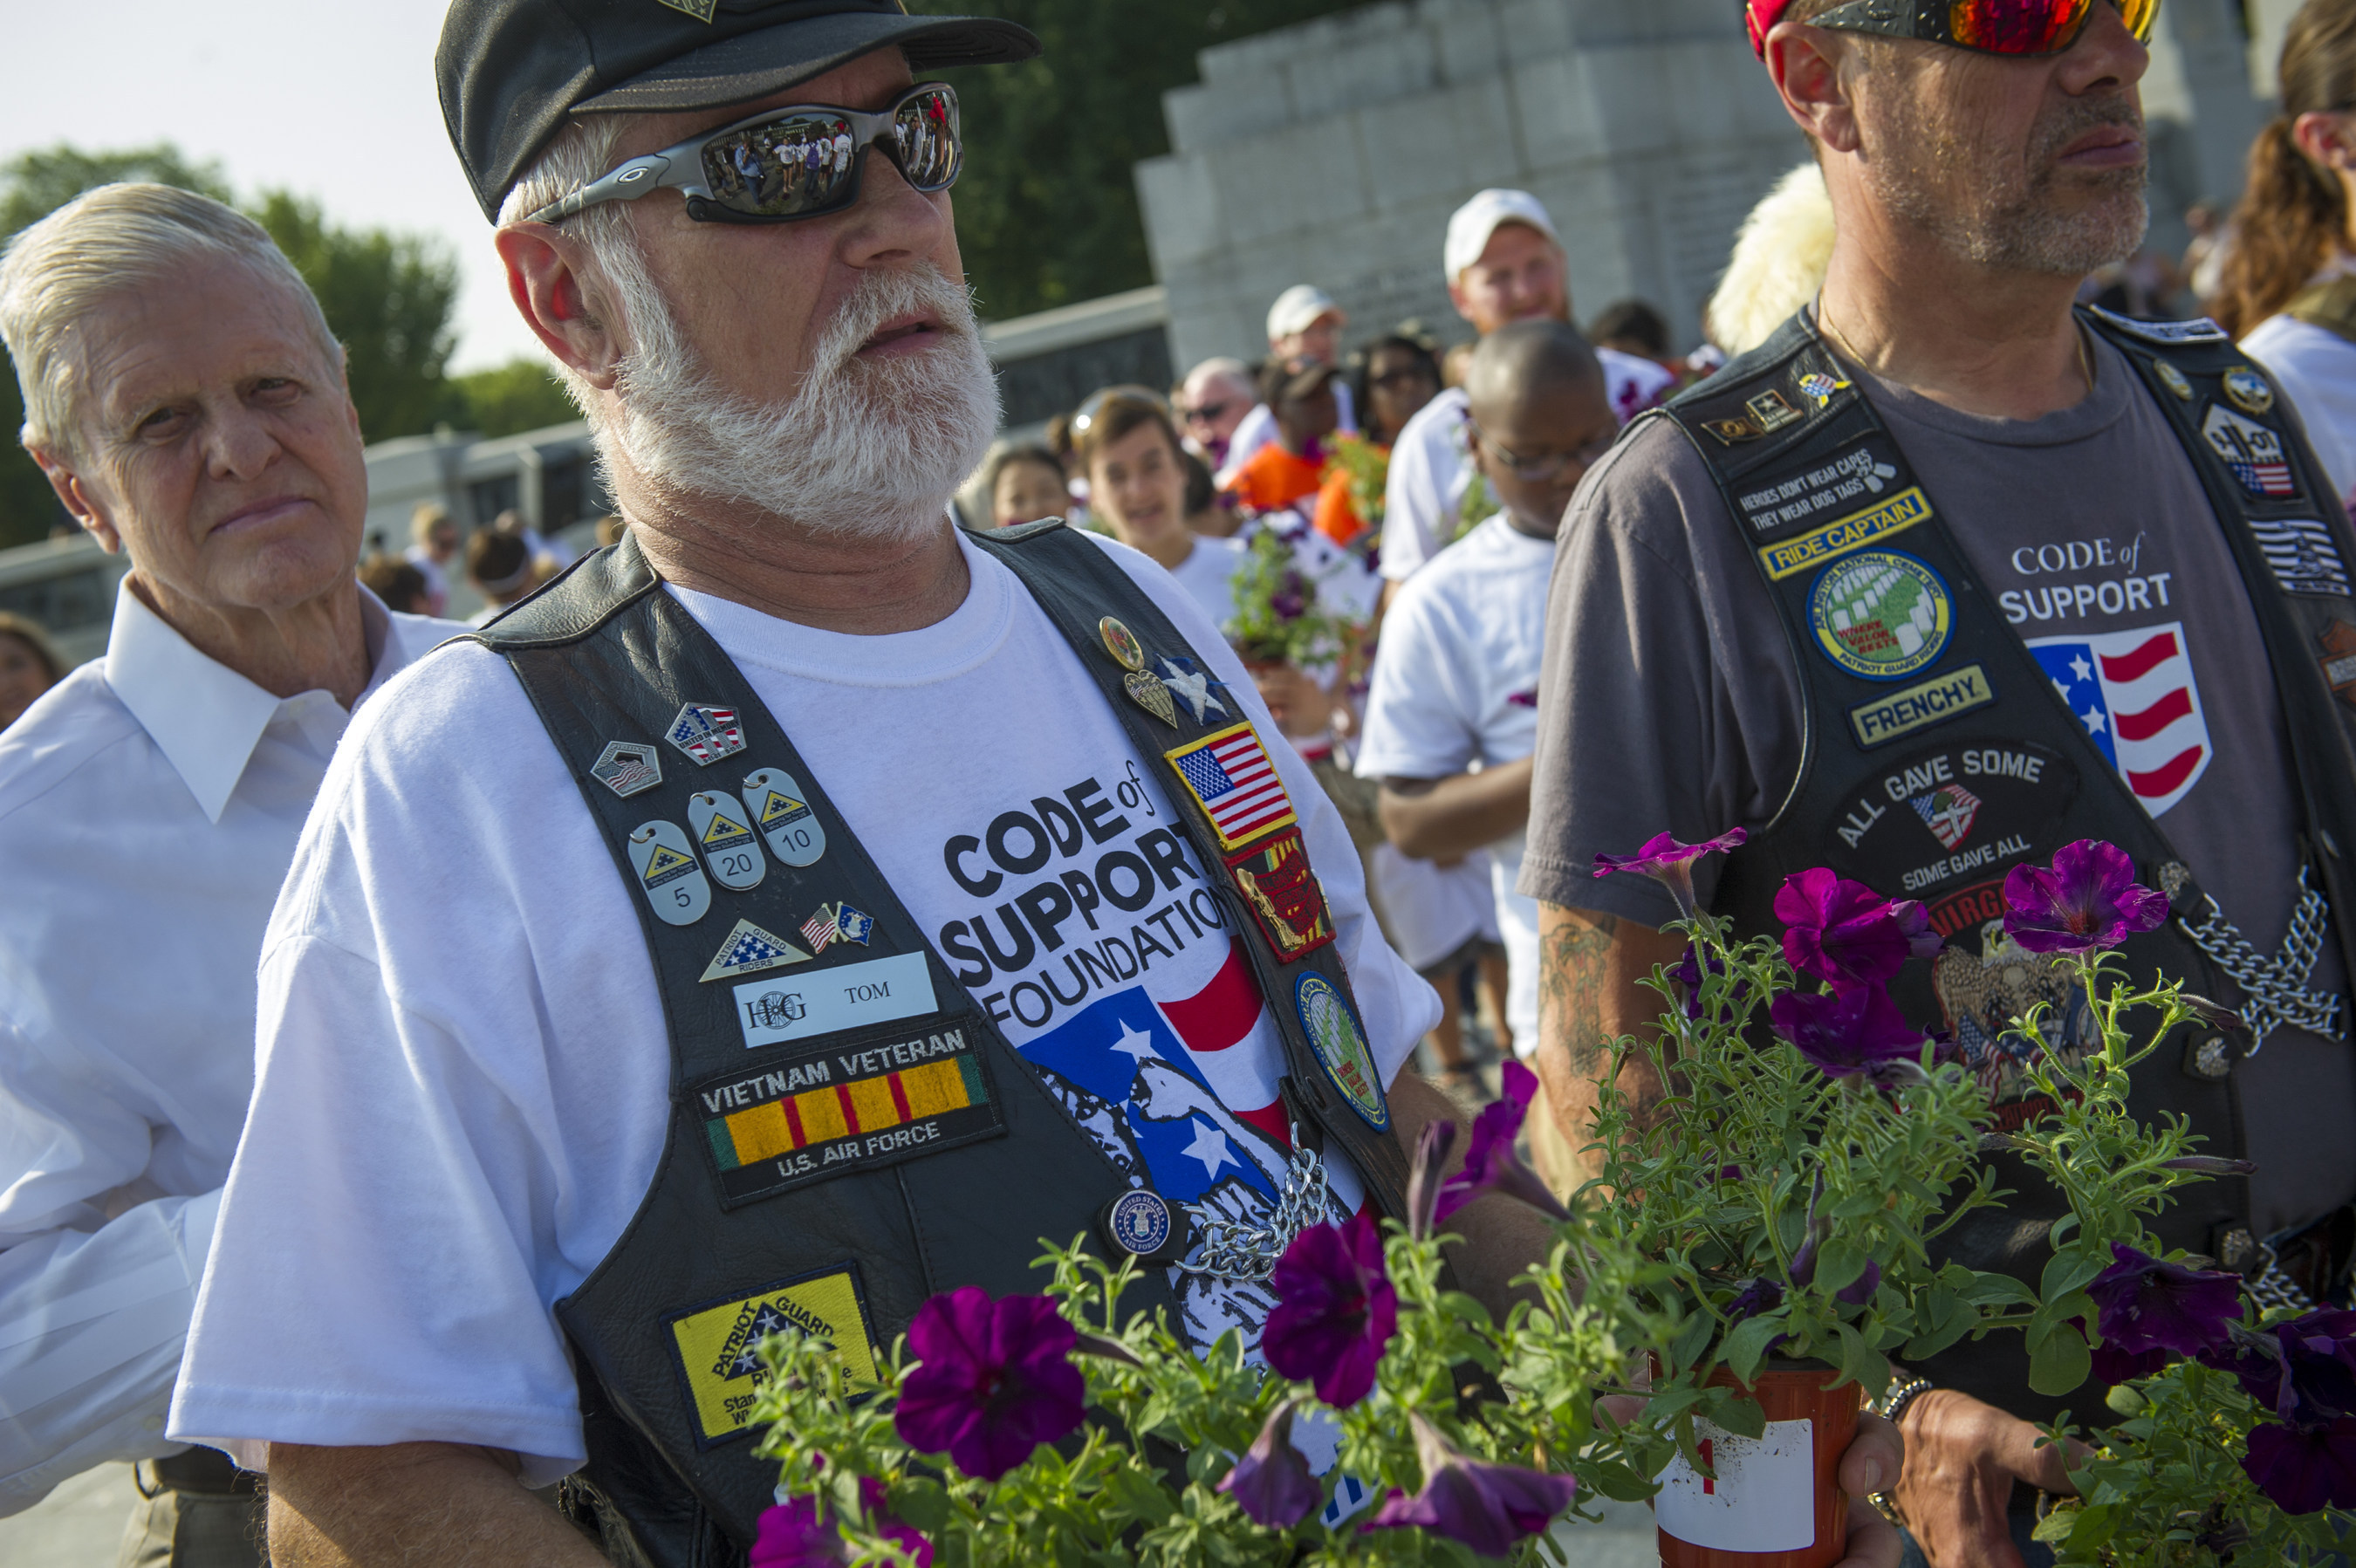 "Members of the Virginia Patriot Guard Riders prepare to pay tribute to Post 9/11 Military Veterans by participating in the Code of Support Foundation's ""Living Wall of Honor"" service project at the World War II Memorial in Washington, D.C. on Sun., Aug. 10. The Living Wall of Honor is comprised of more than 1000 plants and will be on exhibit at the Women In Military Service For America Memorial at the main gate to Arlington National Cemetery where it is expected to remain through September 11, 2014. Photo/Rodney Lamkey (PRNewsFoto/The Code of Support Foundation)"